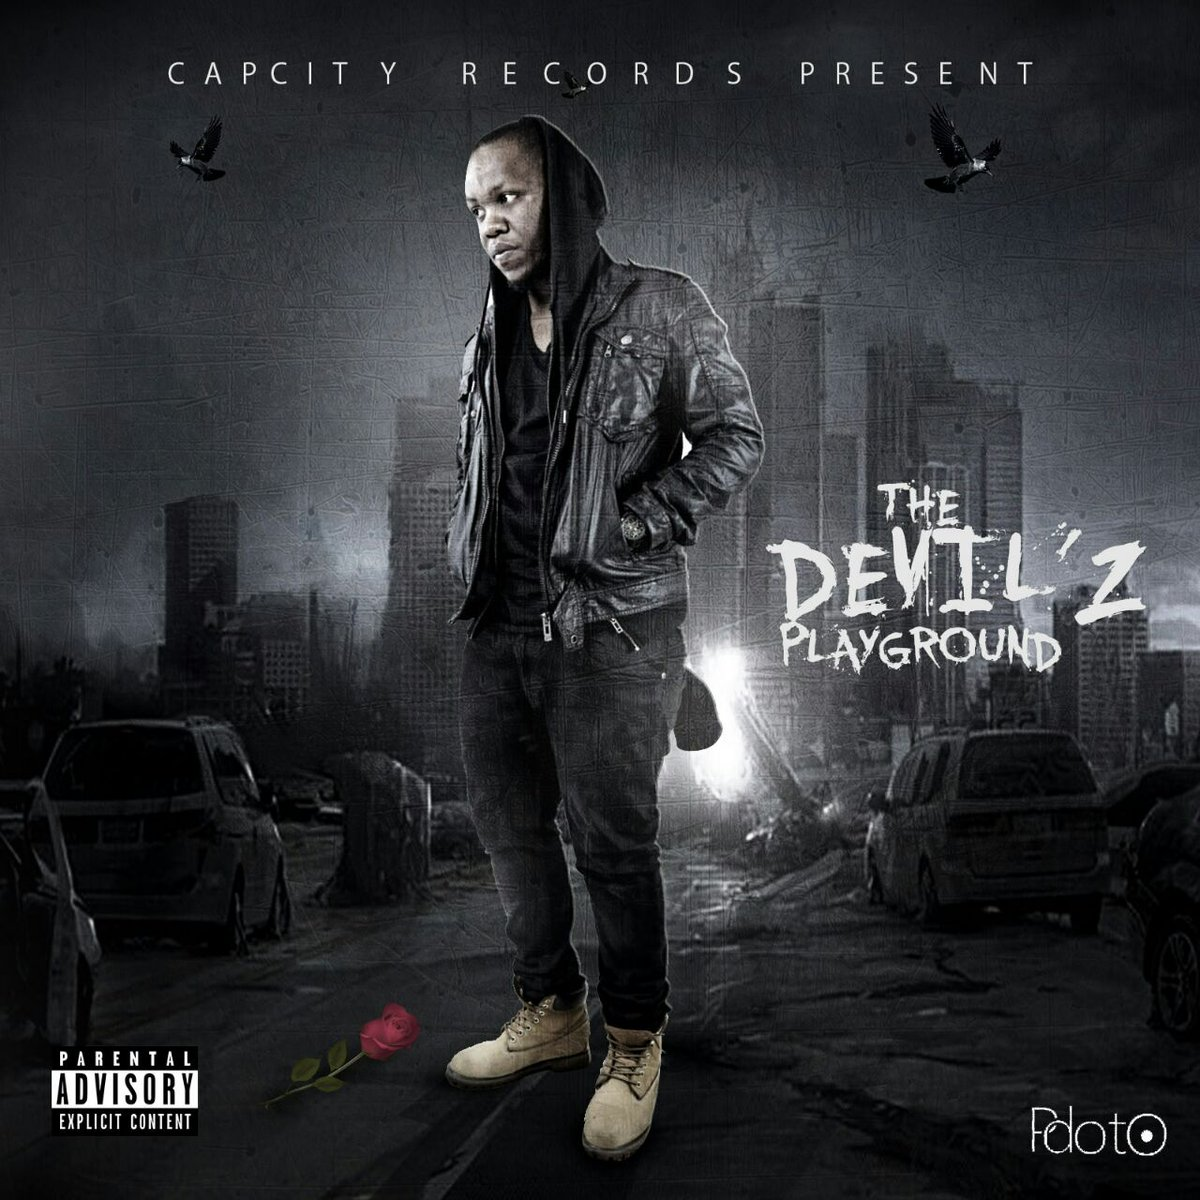 #DevilzPlayground 4 days until the album drops. What a work of art. So proud of my bro @PdotO_SA https://t.co/PVR94rfGz4